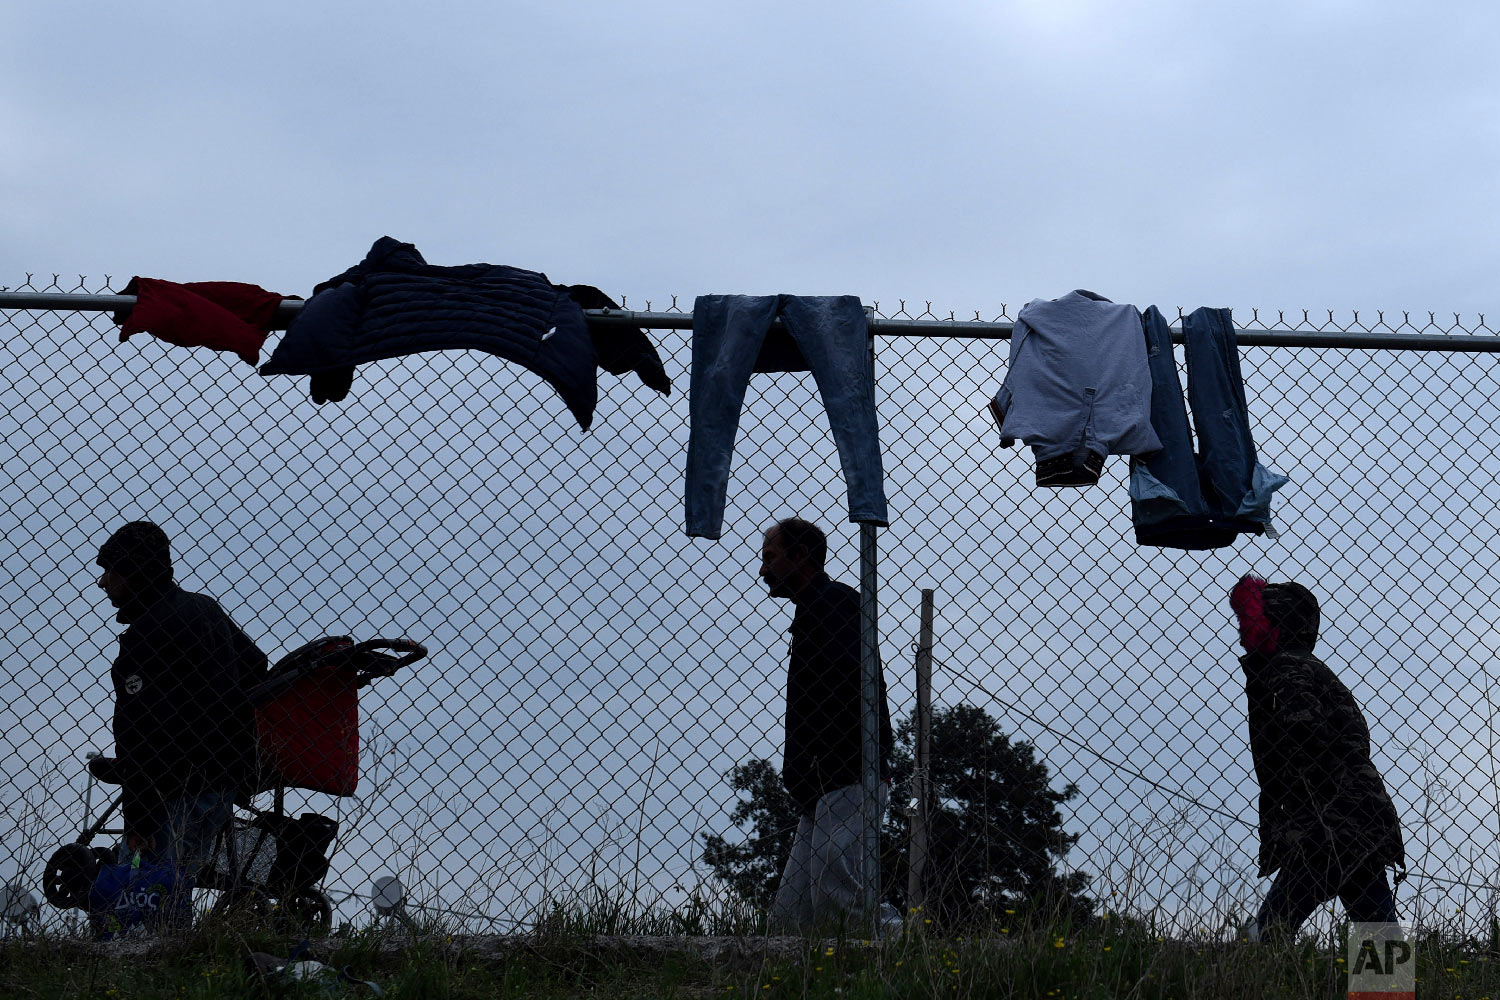 Migrants walk by a refugee camp in the village of Diavata, west of Thessaloniki, northern Greece, Friday, April 5, 2019. (AP Photo/Giannis Papanikos)